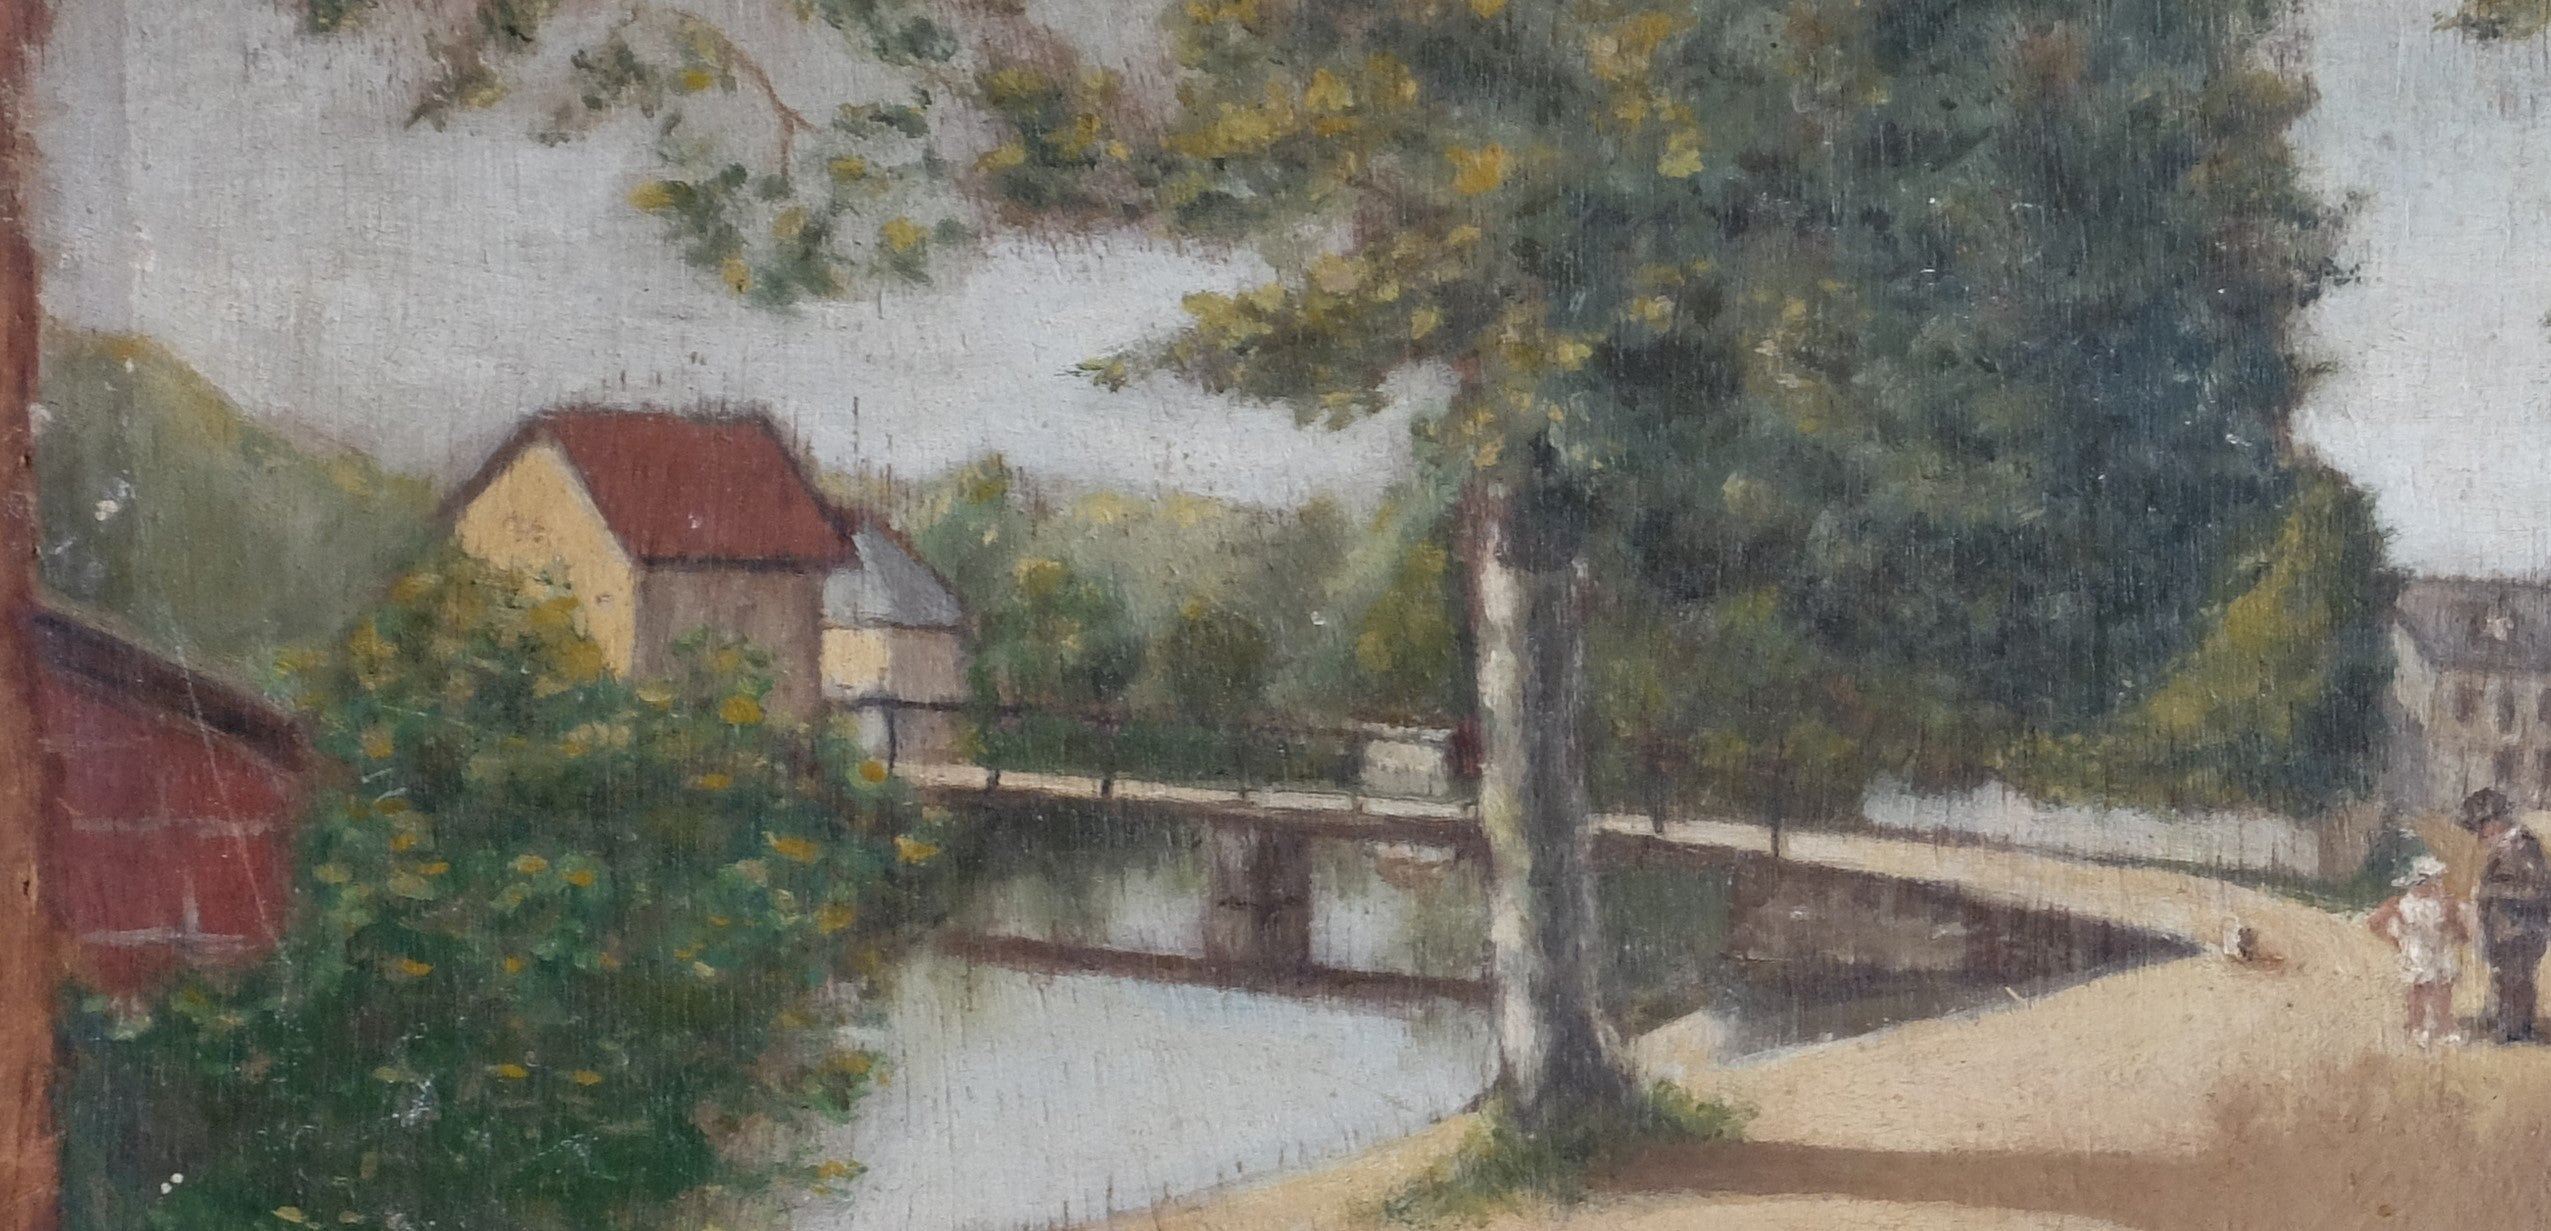 Original Paintings at Place Dauphine: Small impressionist style landscape